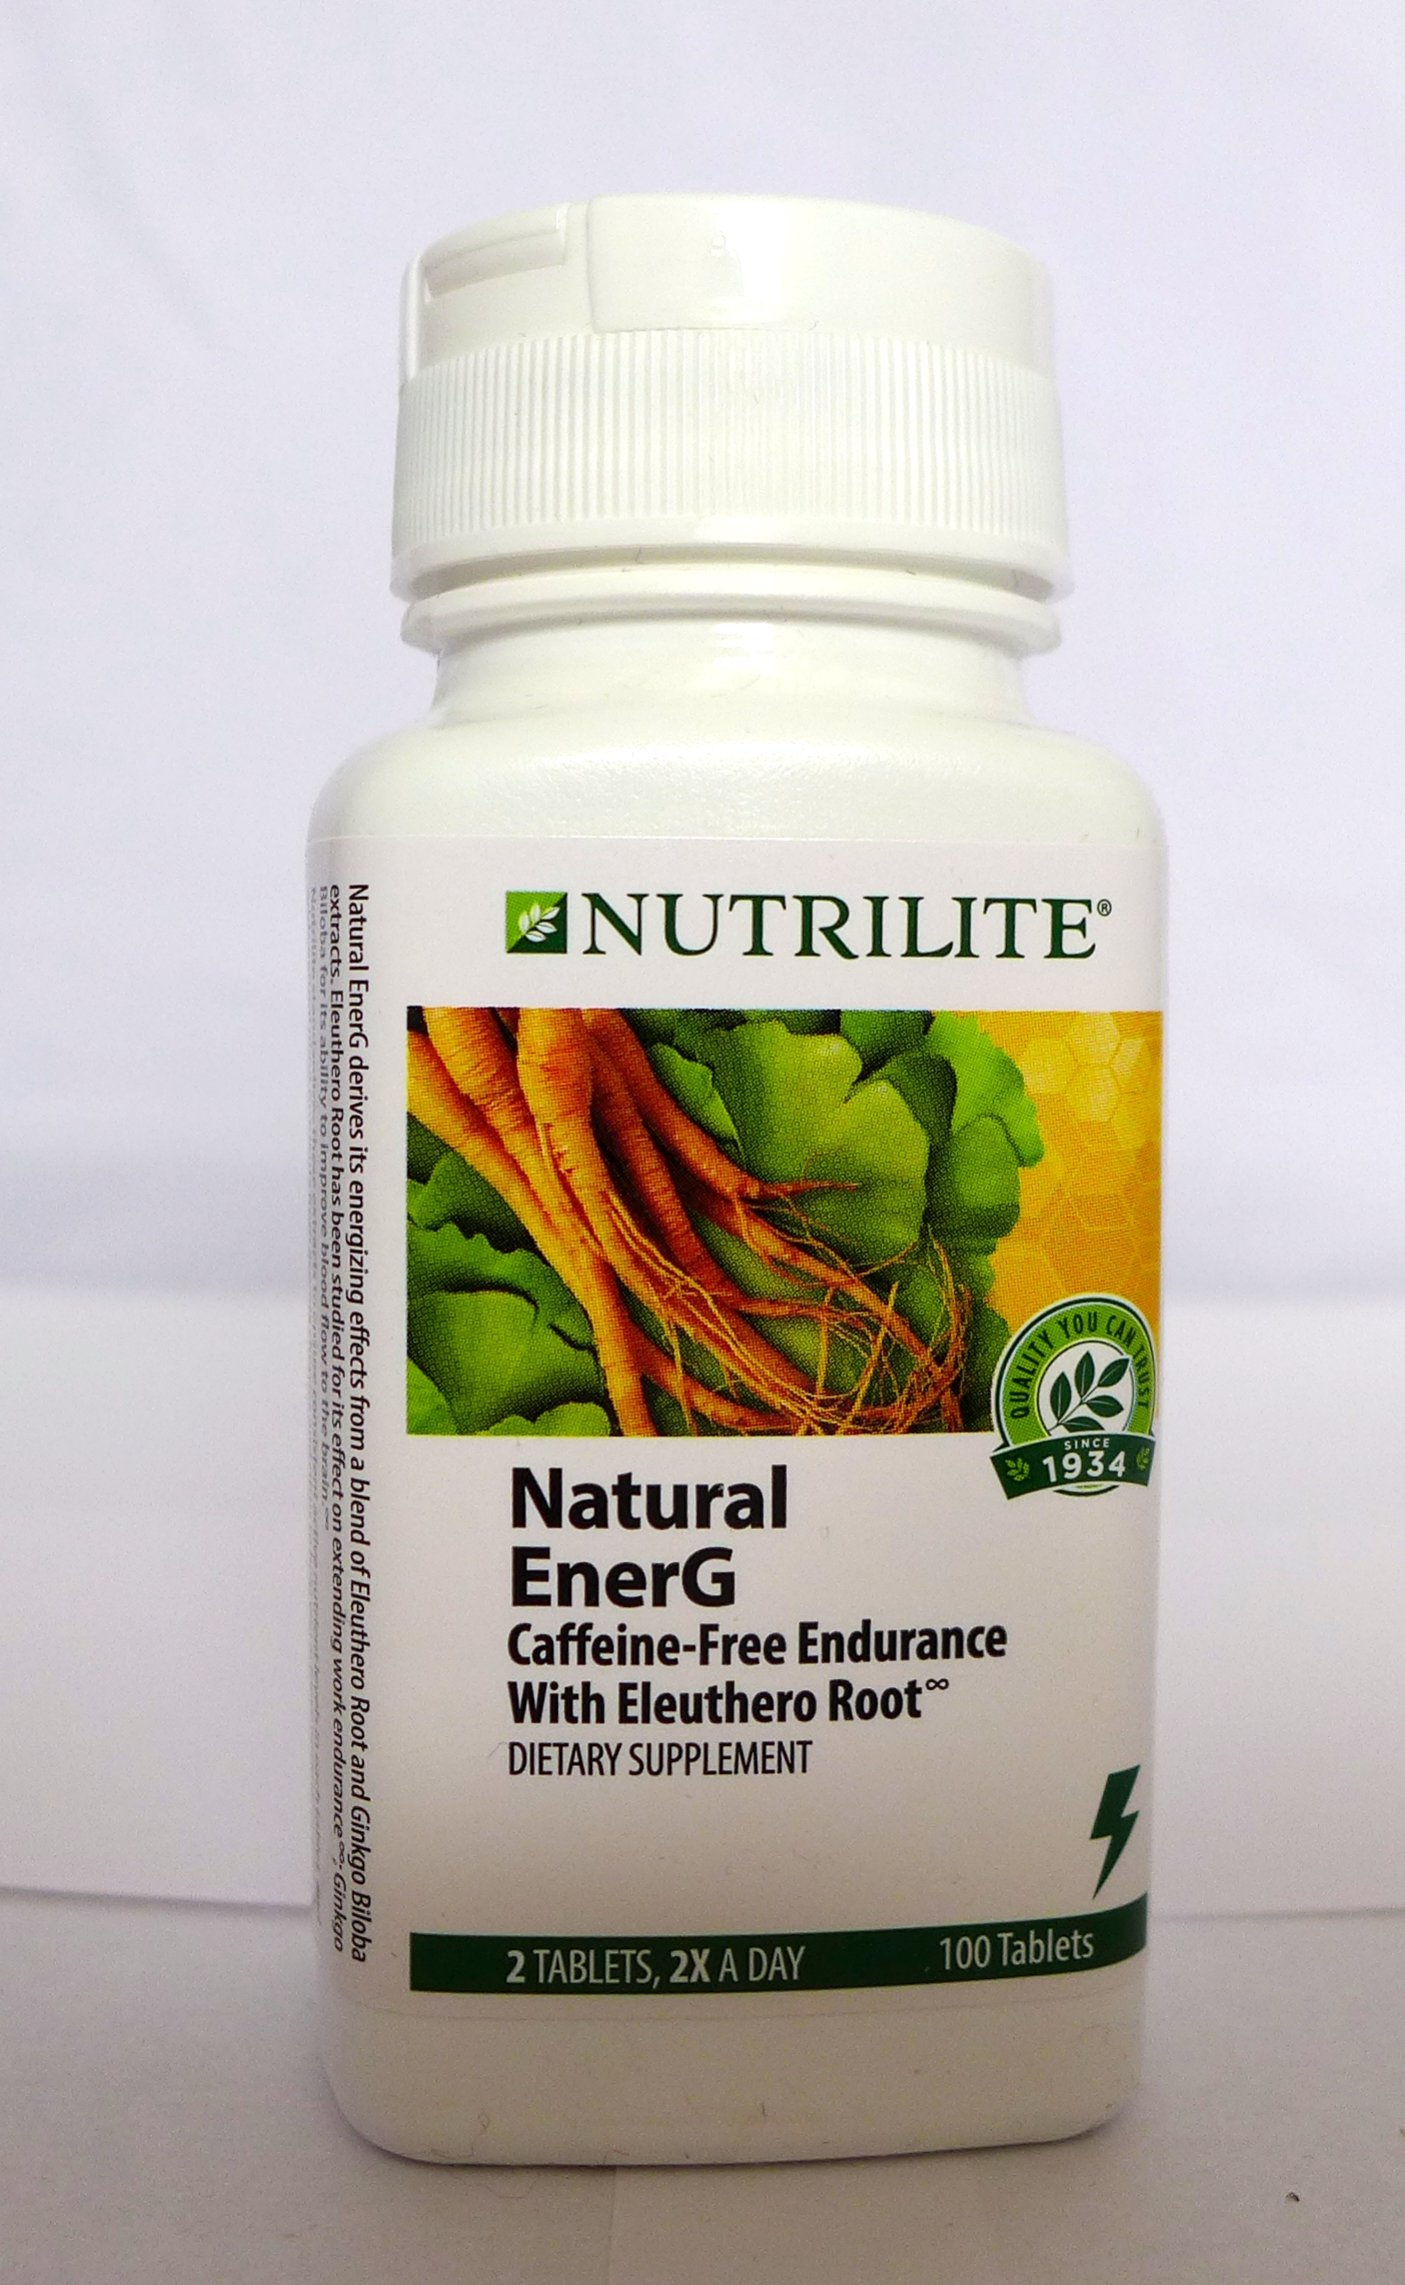 Nutrilite Natural EnerG Caffeine-free Endurance with Eleuthero Root 100 Tablets